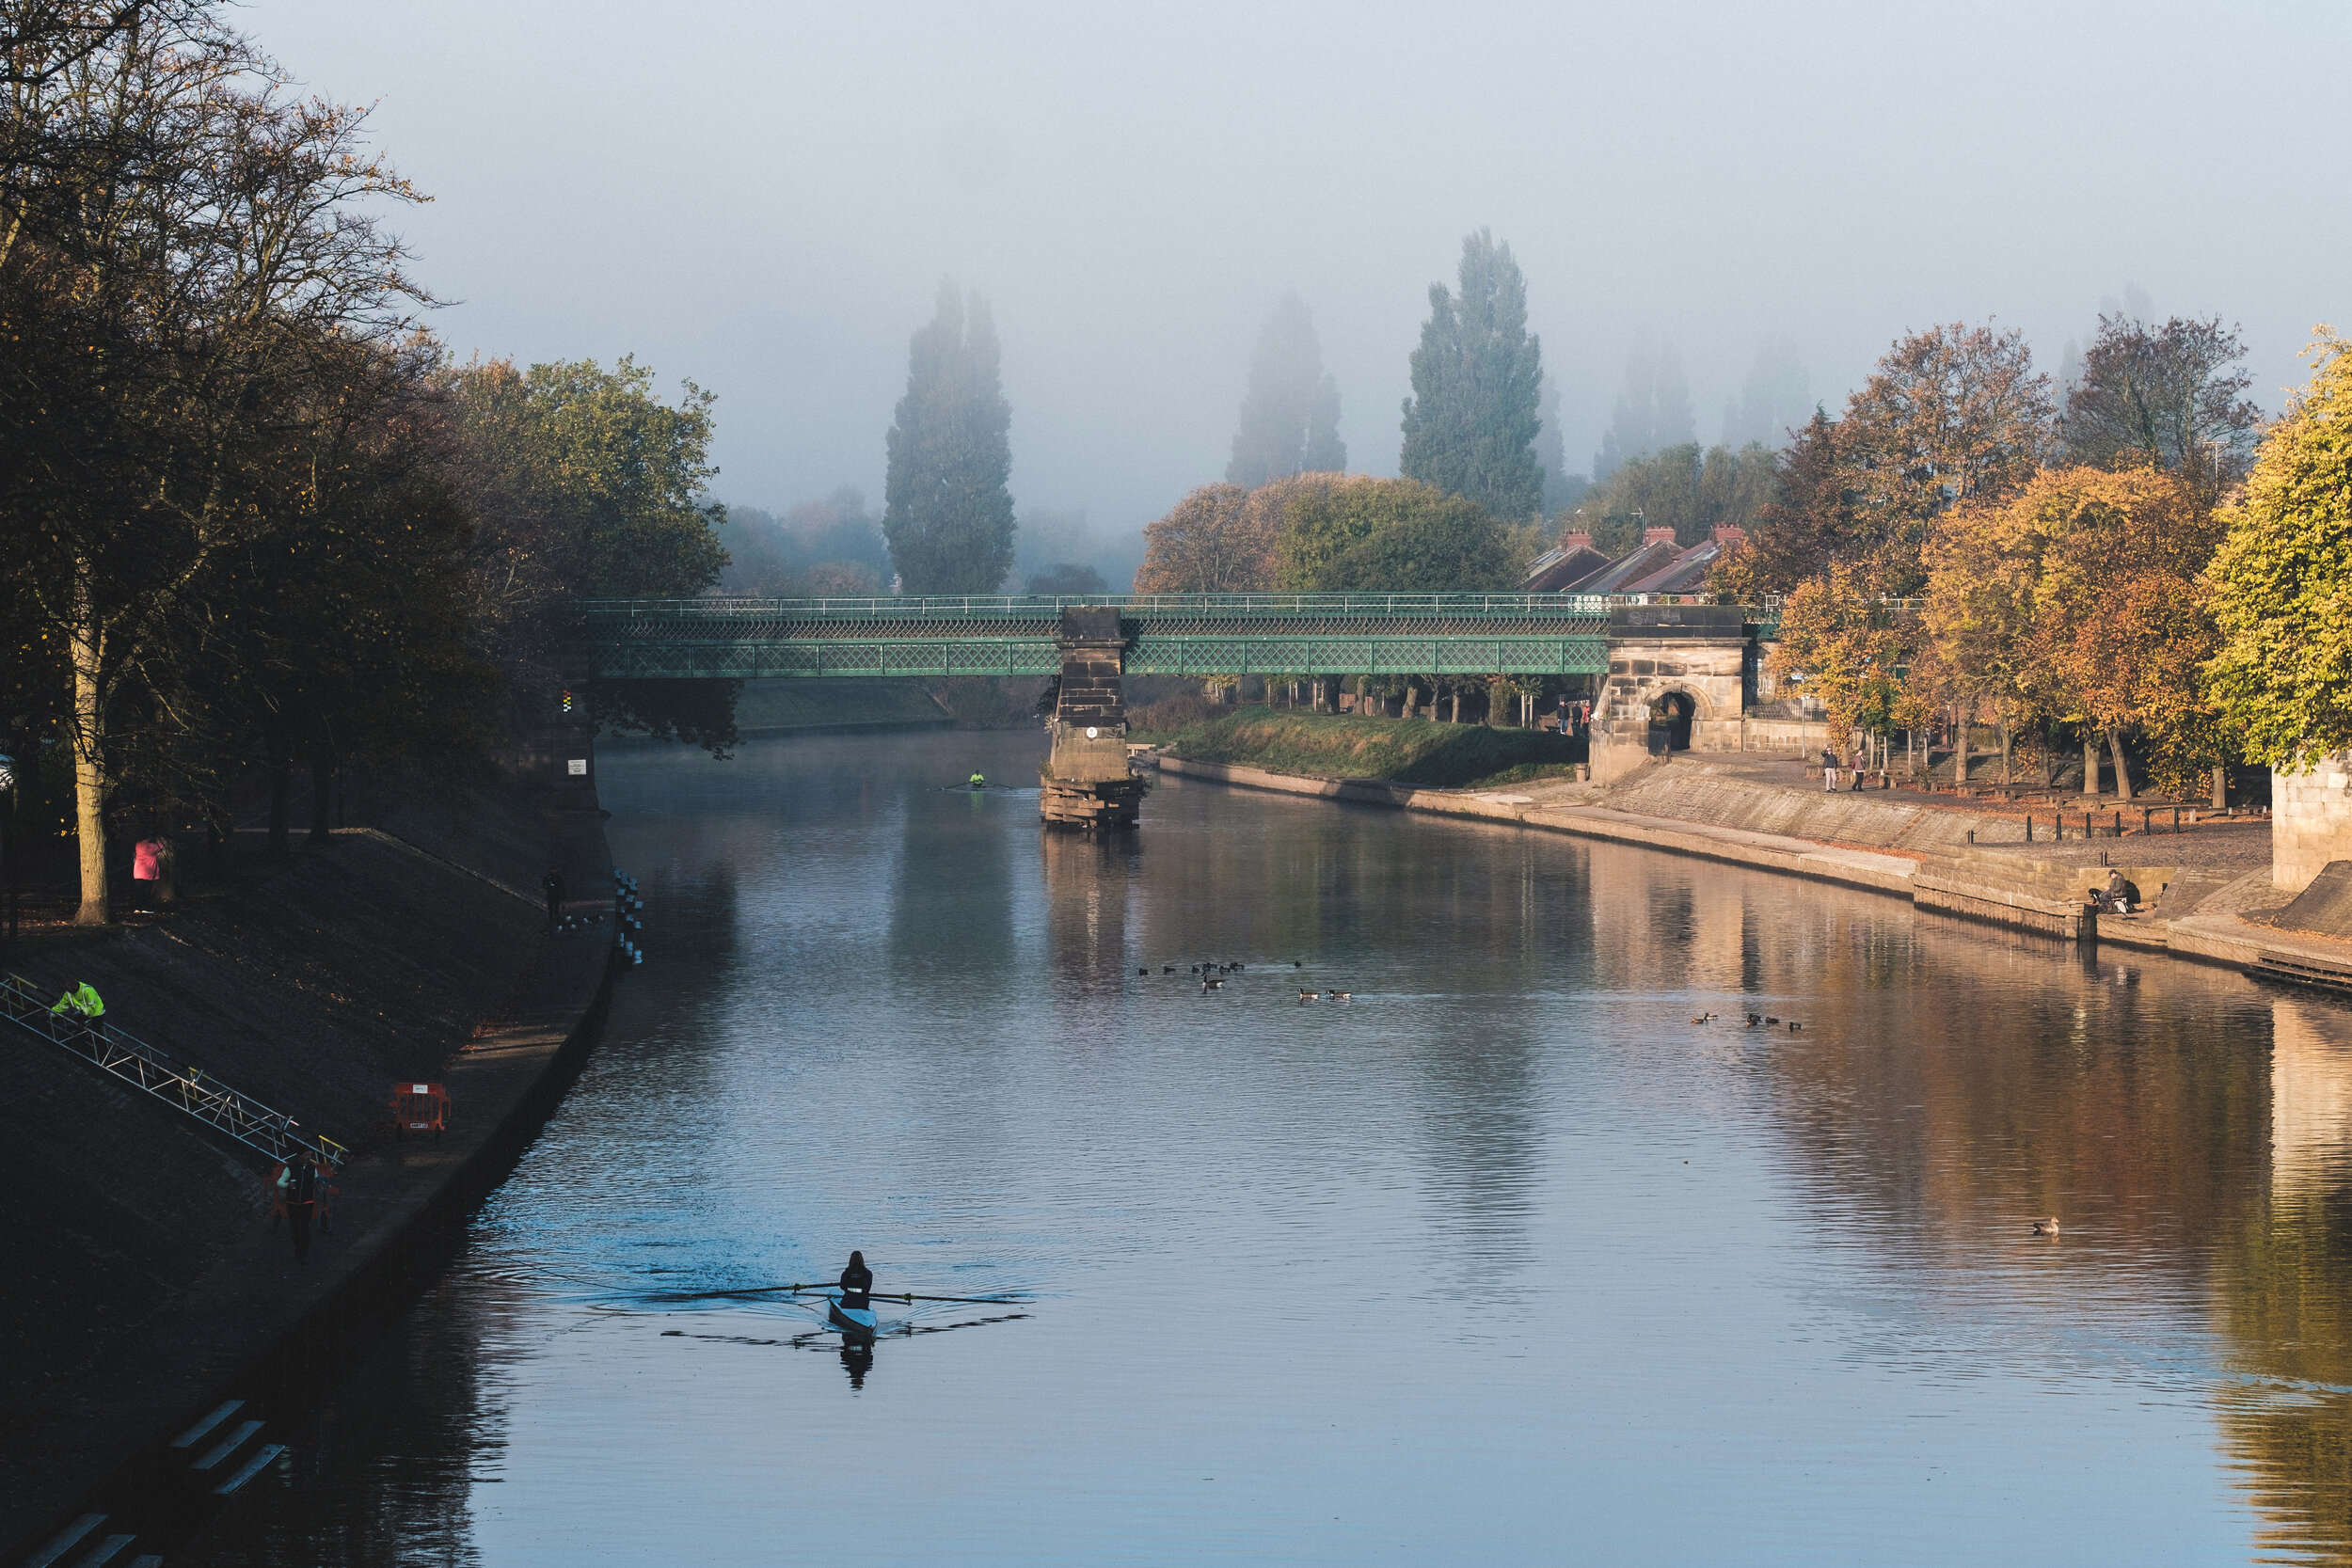 A single scull rowing boat on the River Ouse in York, England